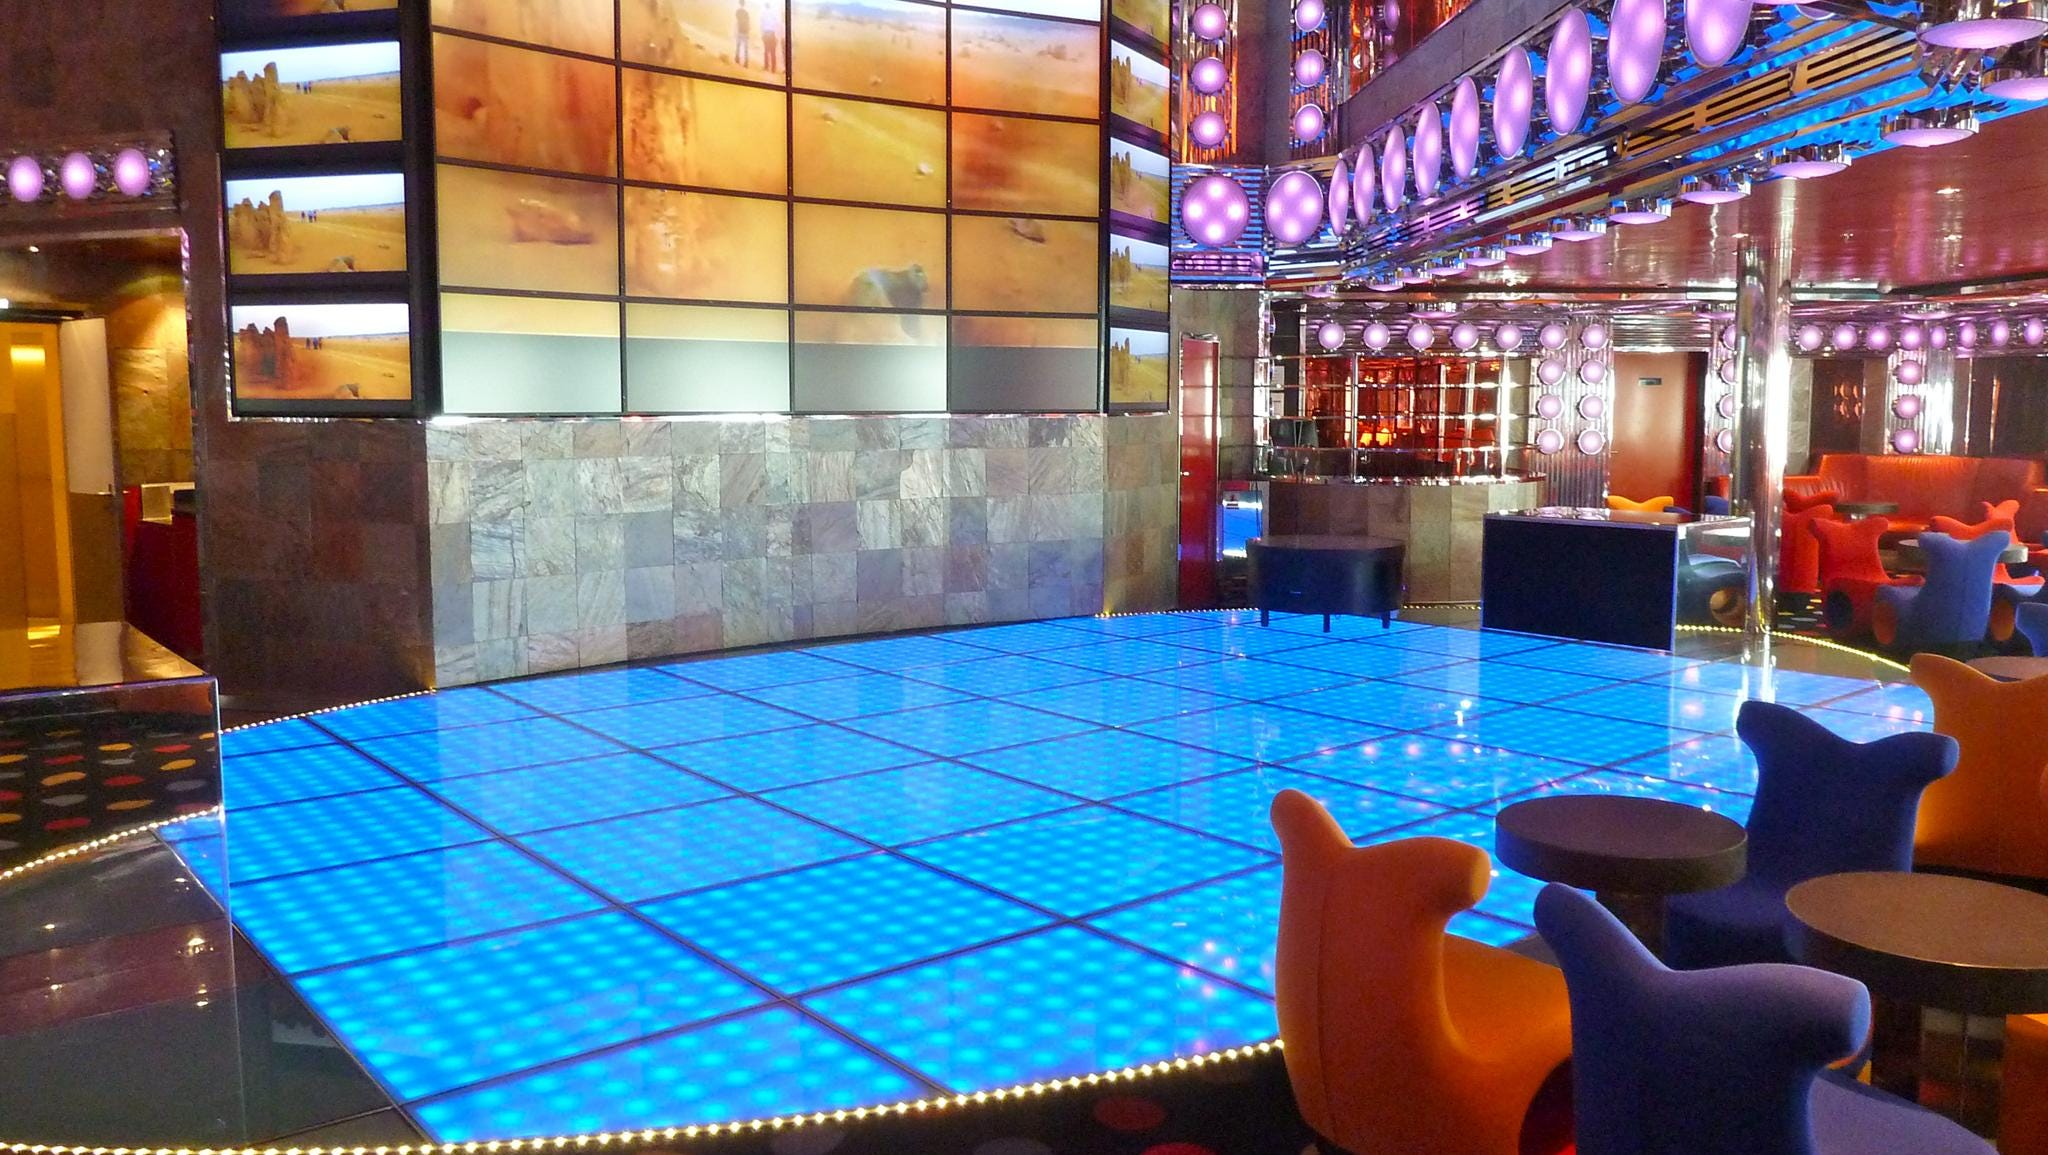 "Inboard of the Lounge and Bar Alcazar on Gardenia Deck, there is the lower level of the double-deck Discoteca Shaharazad (Farsi and Arabic for ""city dweller""), which features a fiber-optic acrylic dance floor, vivid polka dots and pulsating lavender and blue lighting."